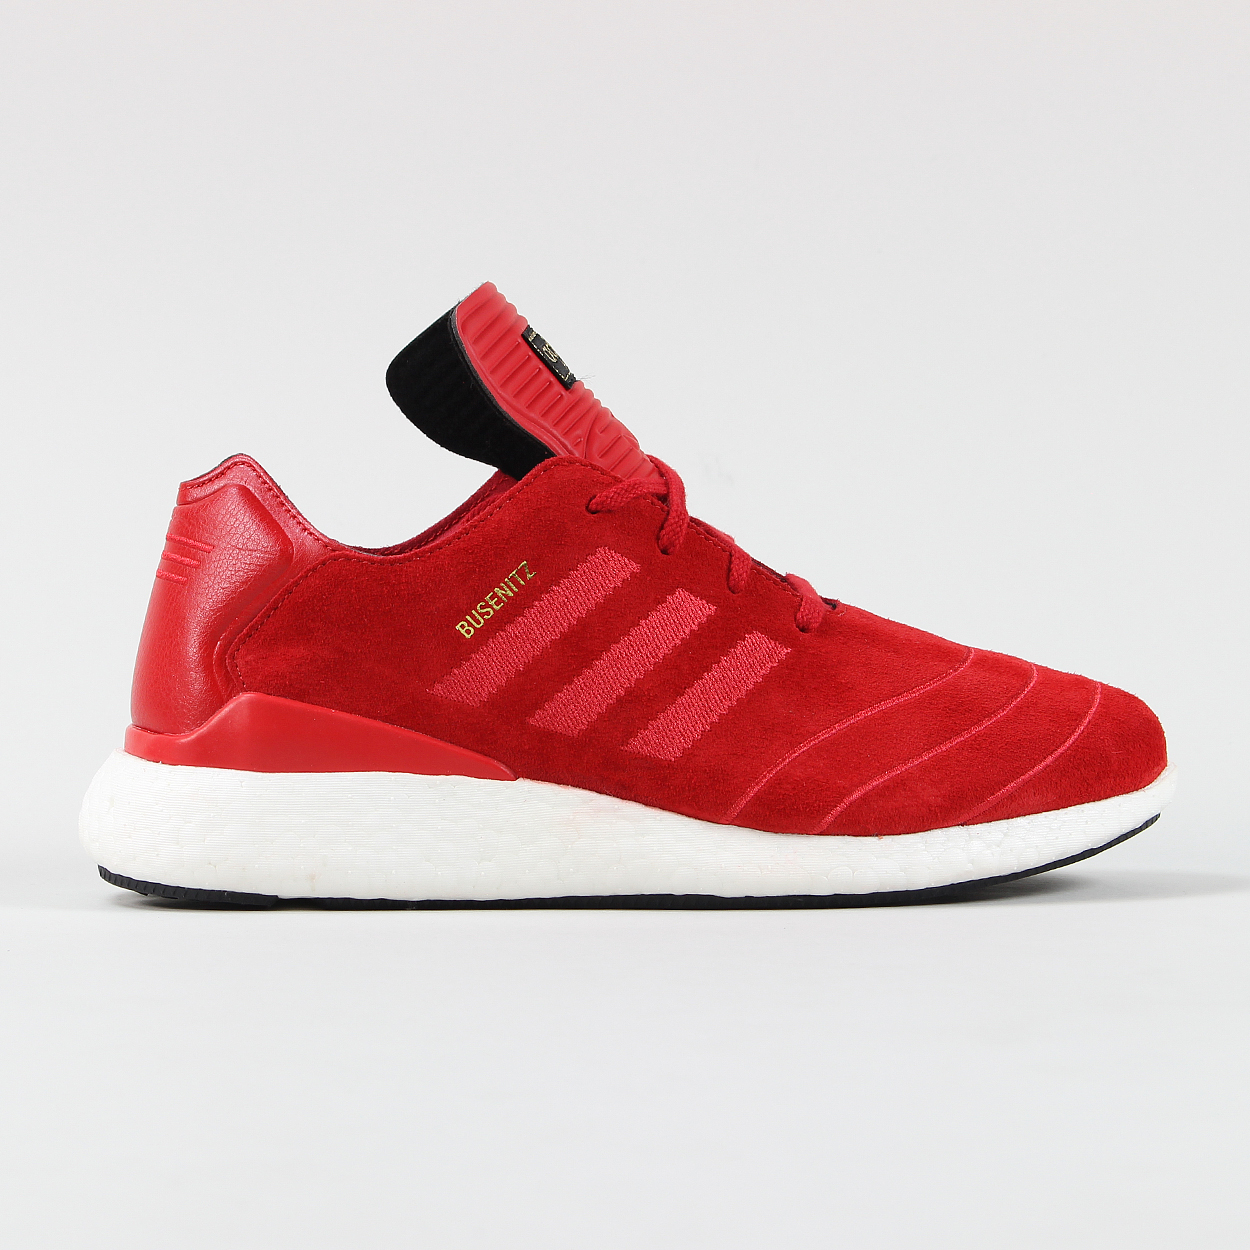 96d90c10e04 Adidas Skateboarding Dennis Busenitz Pure Boost Shoes Red £75.00